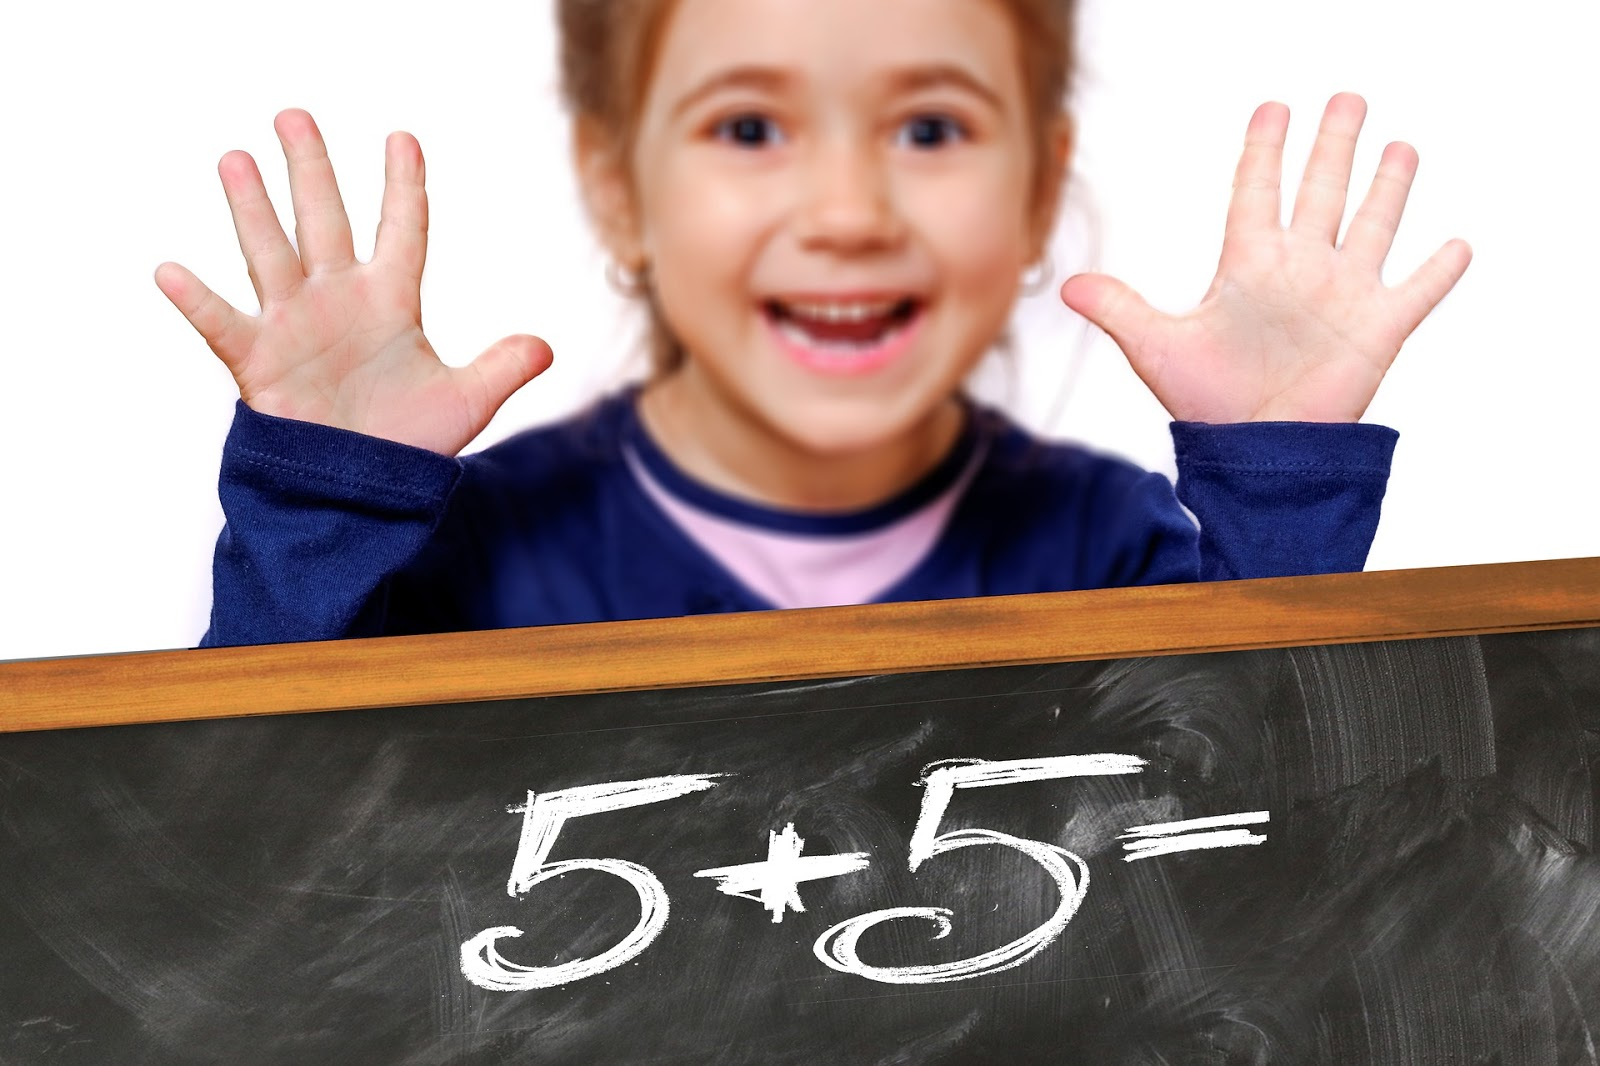 a child holds up all 10 fingers in front of a black board with a simple math problem